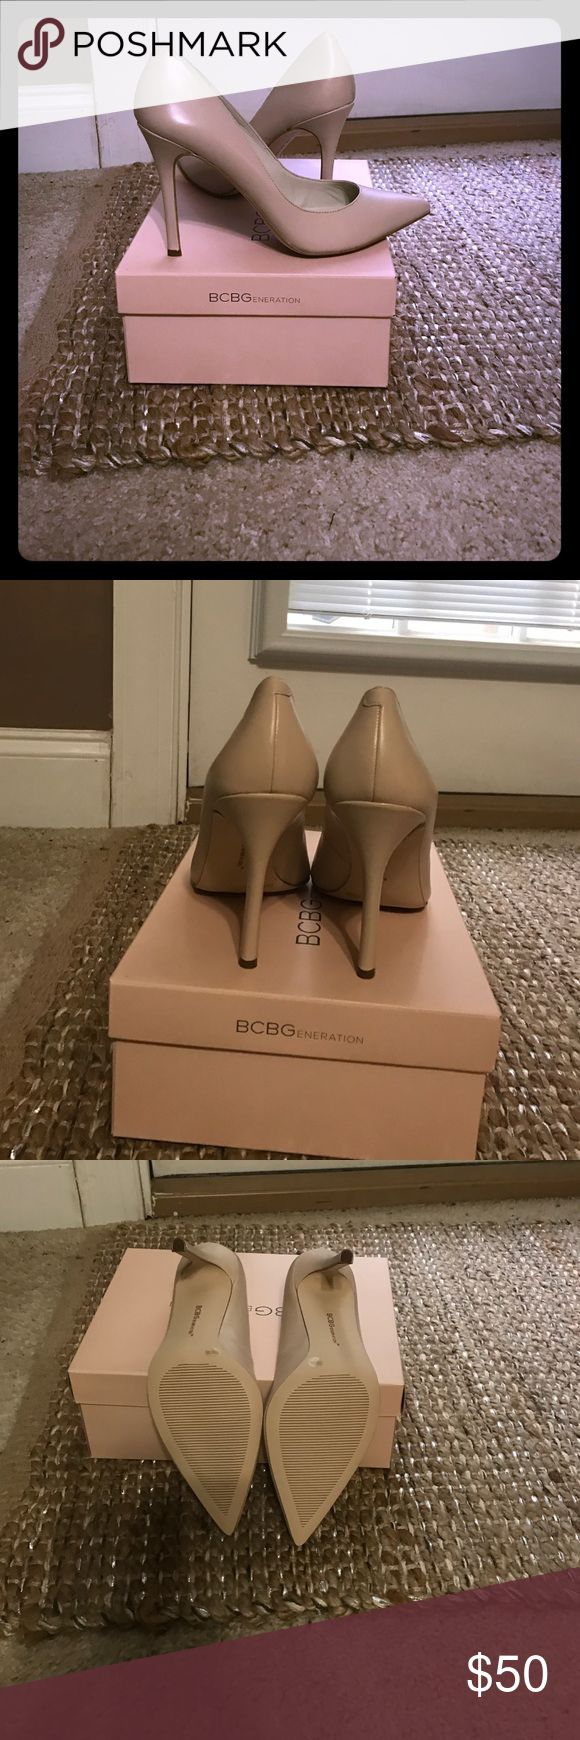 Nude BCBGeneration pumps. Size 8.5, 4 inch heel. New in box BCBGeneration Stiletto pumps. Size 8.5, 4 inch heels. Pair with anything to elongate the legs! BCBGeneration Shoes Heels